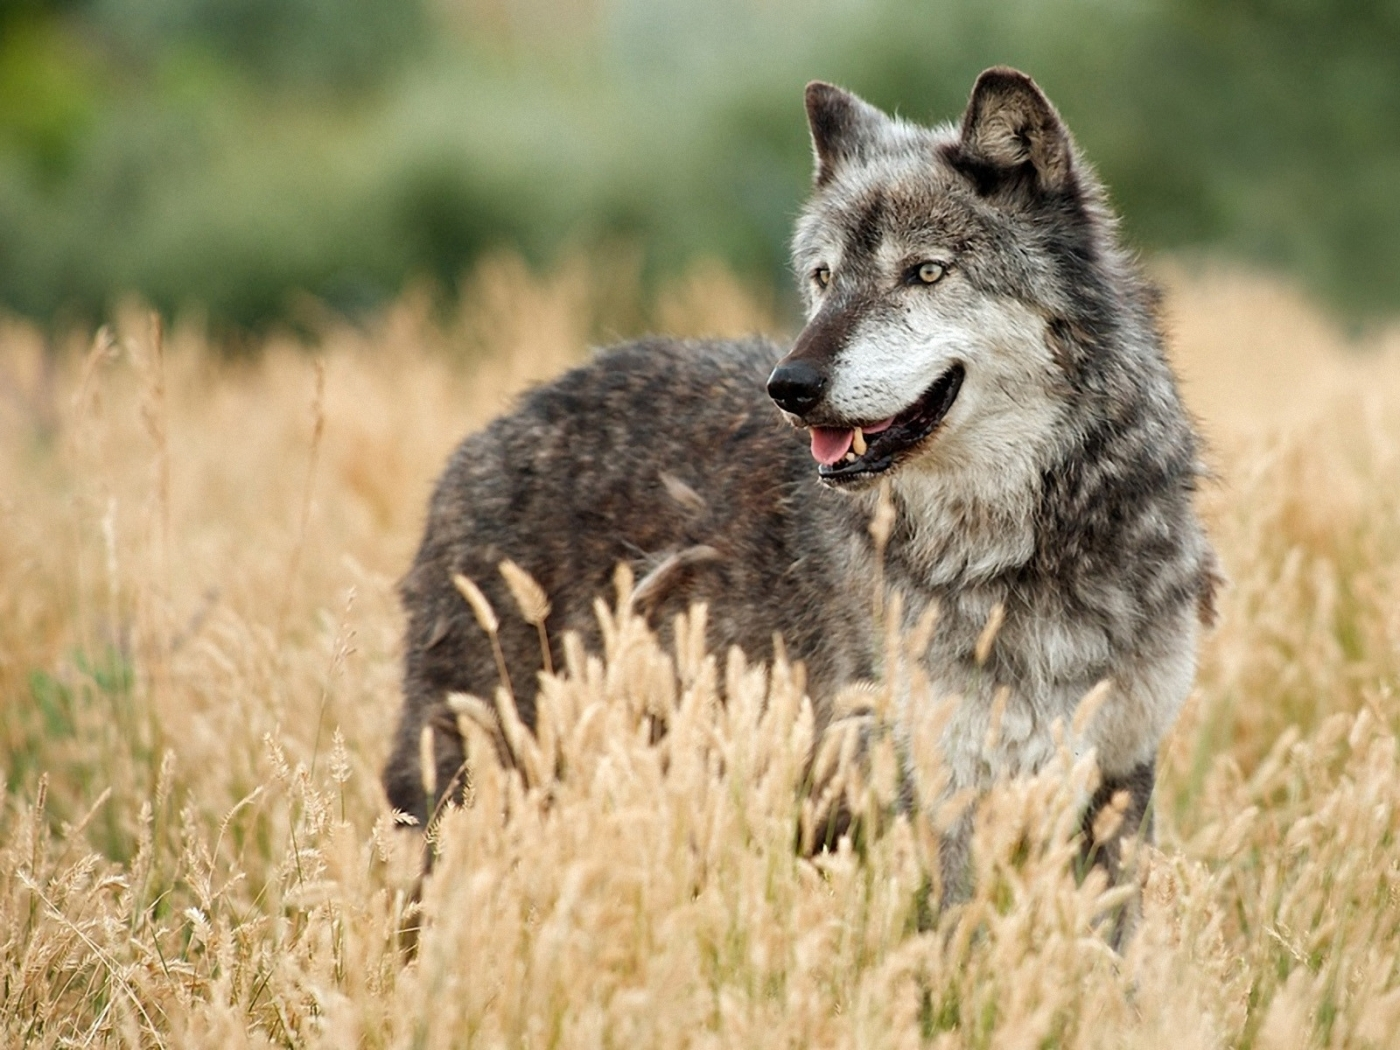 42520 download wallpaper Animals, Wolfs screensavers and pictures for free